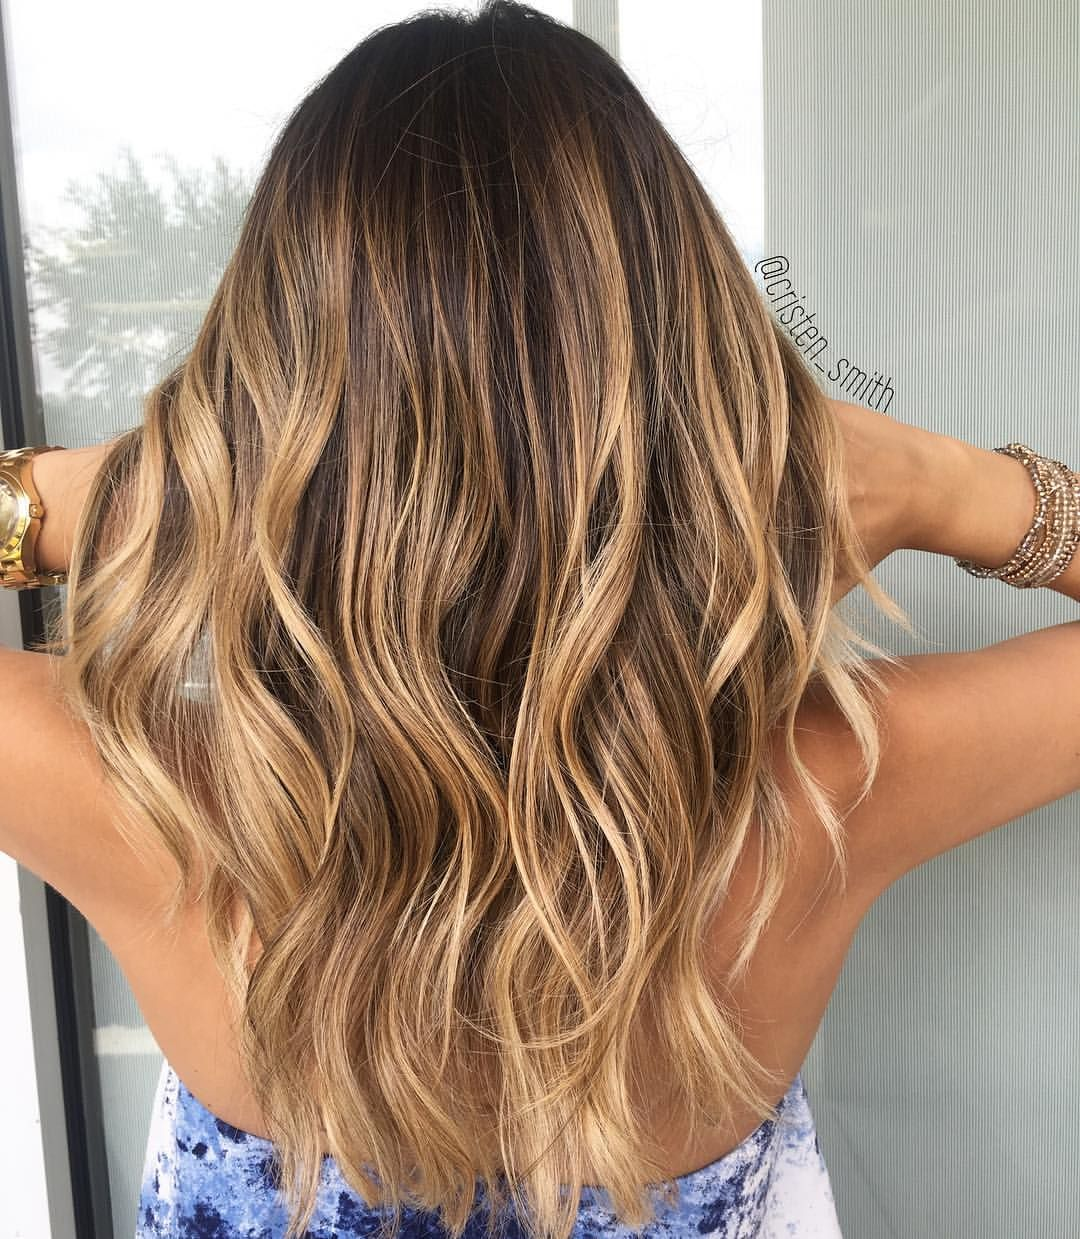 Hairstylist colorist fave style expert serene salon south fl